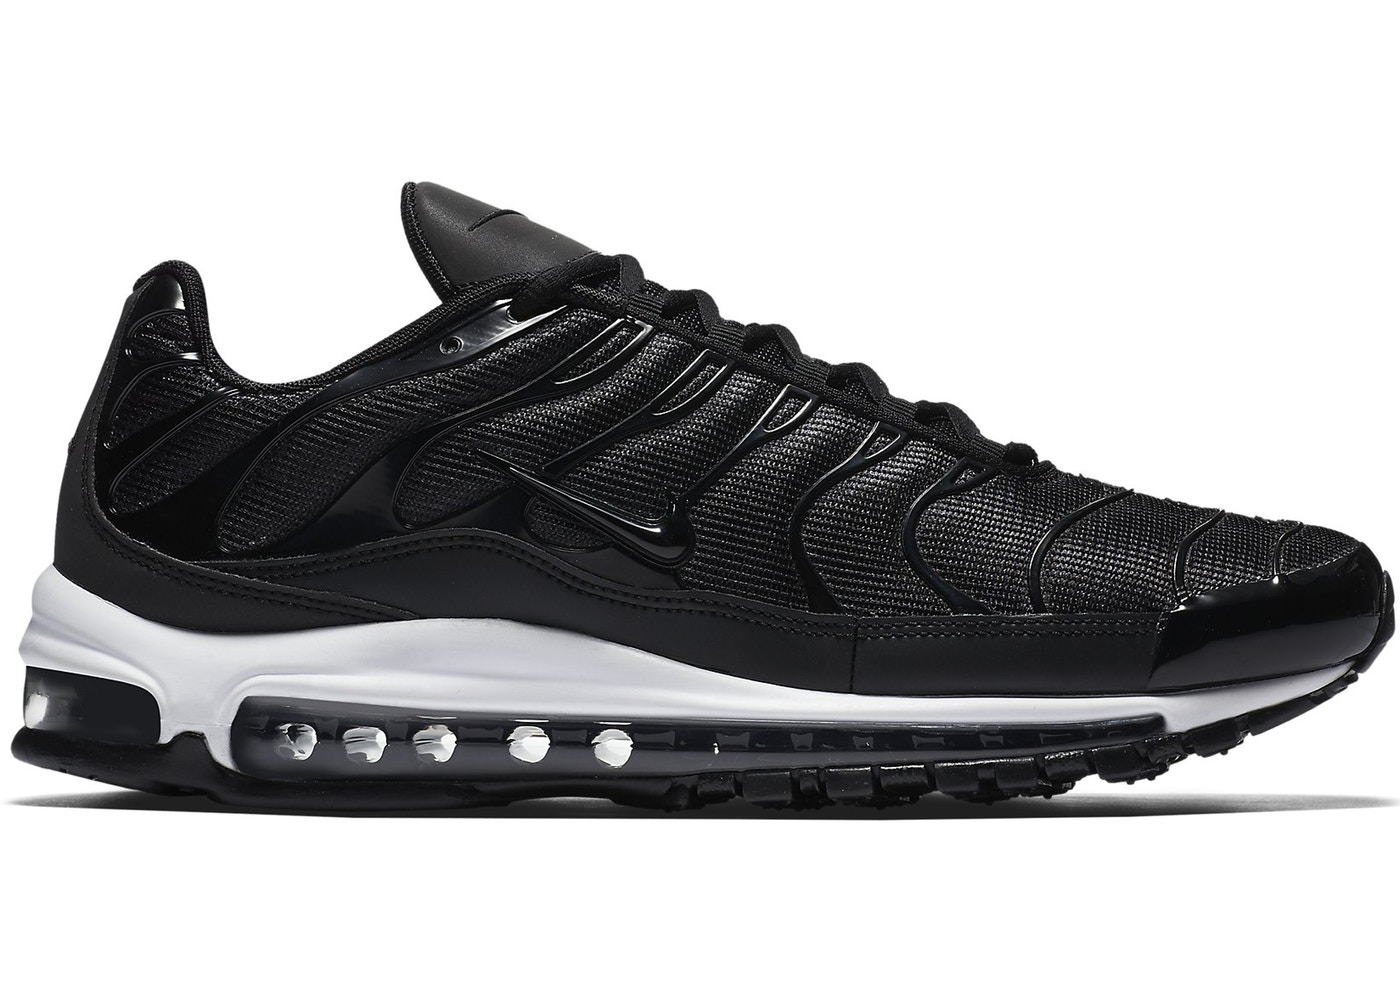 Air Max 97 Plus Black White - AH8144-001 959e7a5bc